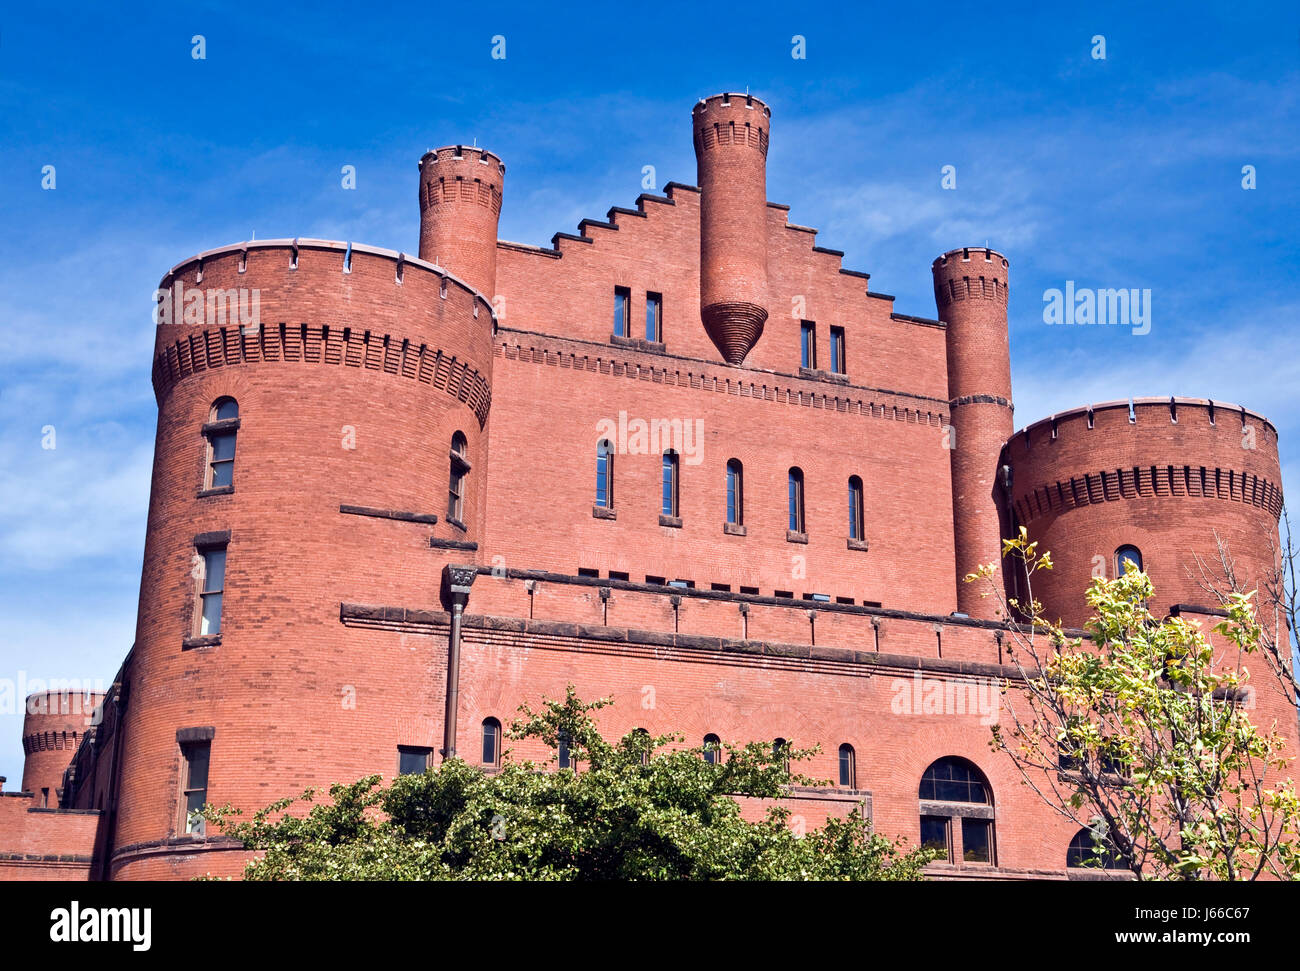 tree trees brick castle old armory firmament sky red building